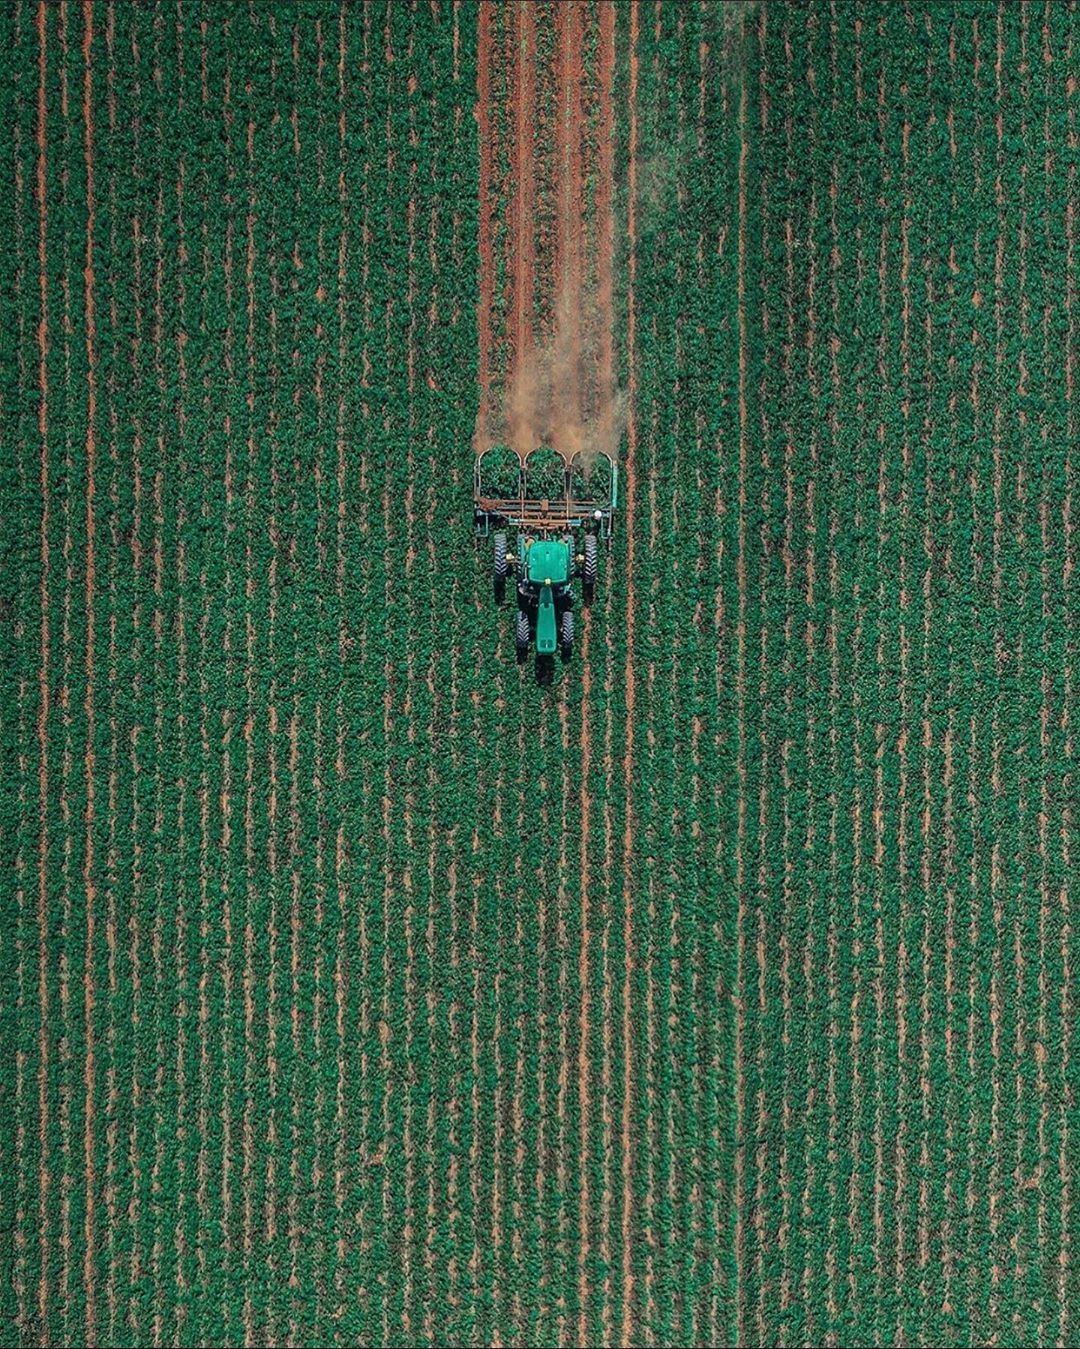 """♾ Top Down Drone Shots ♾ on Instagram: """"Happy Thanksgiving 🦃🍽🍁 Sounds fitting to have the Farming theme run for Thanksgiving! What are your plans today? ————————————————————— 🌅  …"""""""